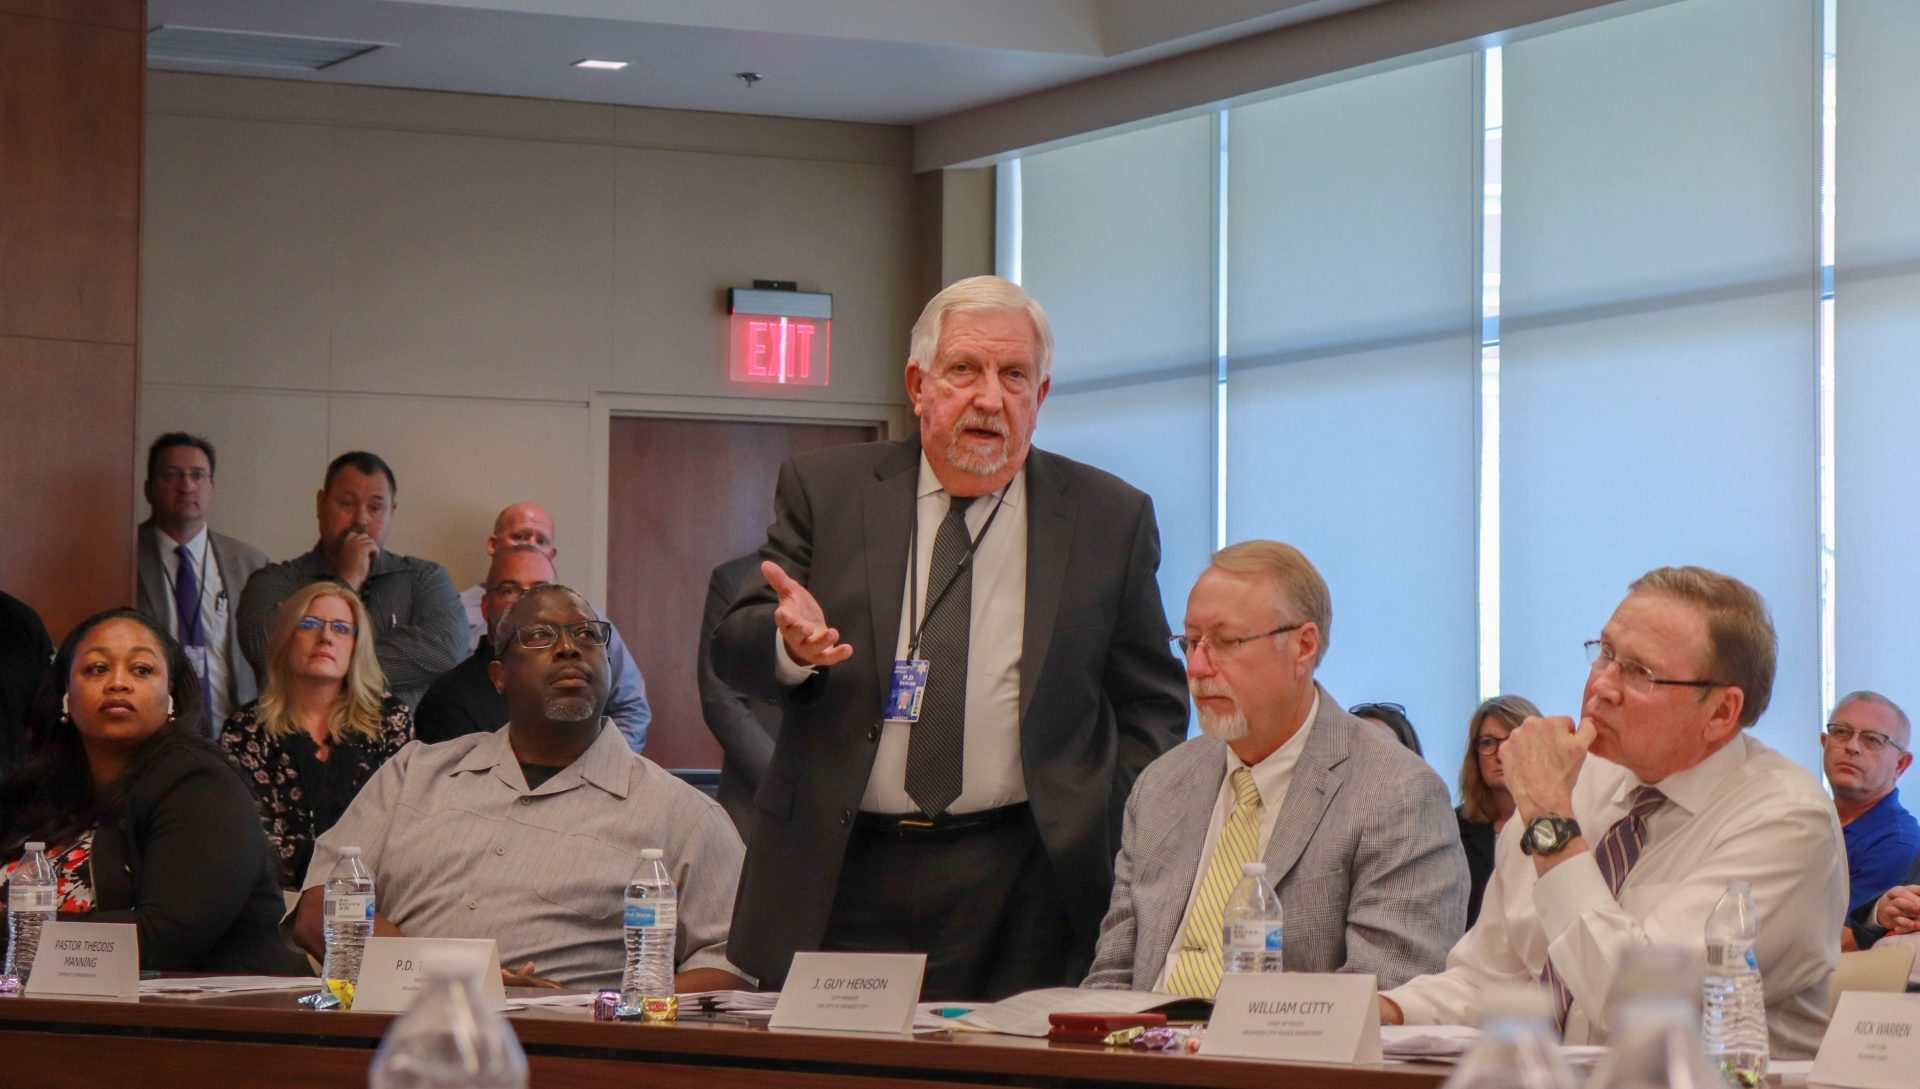 Sheriff P.D. Taylor explains his frustrations with the proposal at the Oklahoma County Criminal Justice Advisory Council meeting.